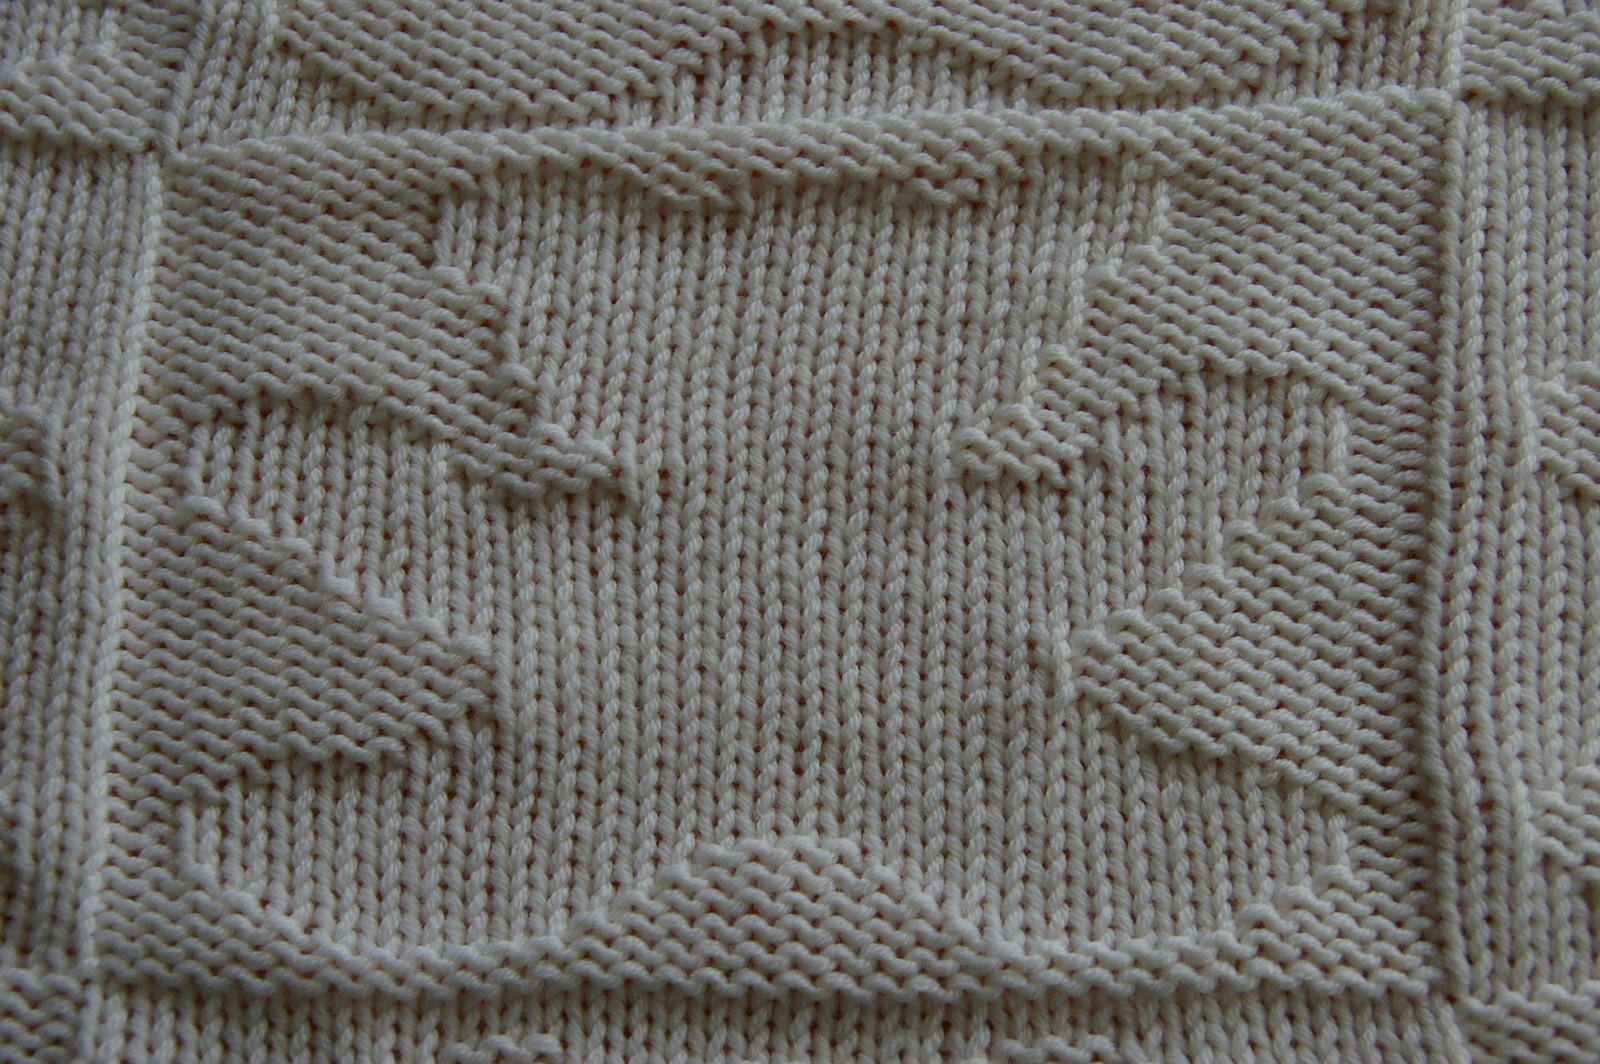 Grille tricot couverture bebe